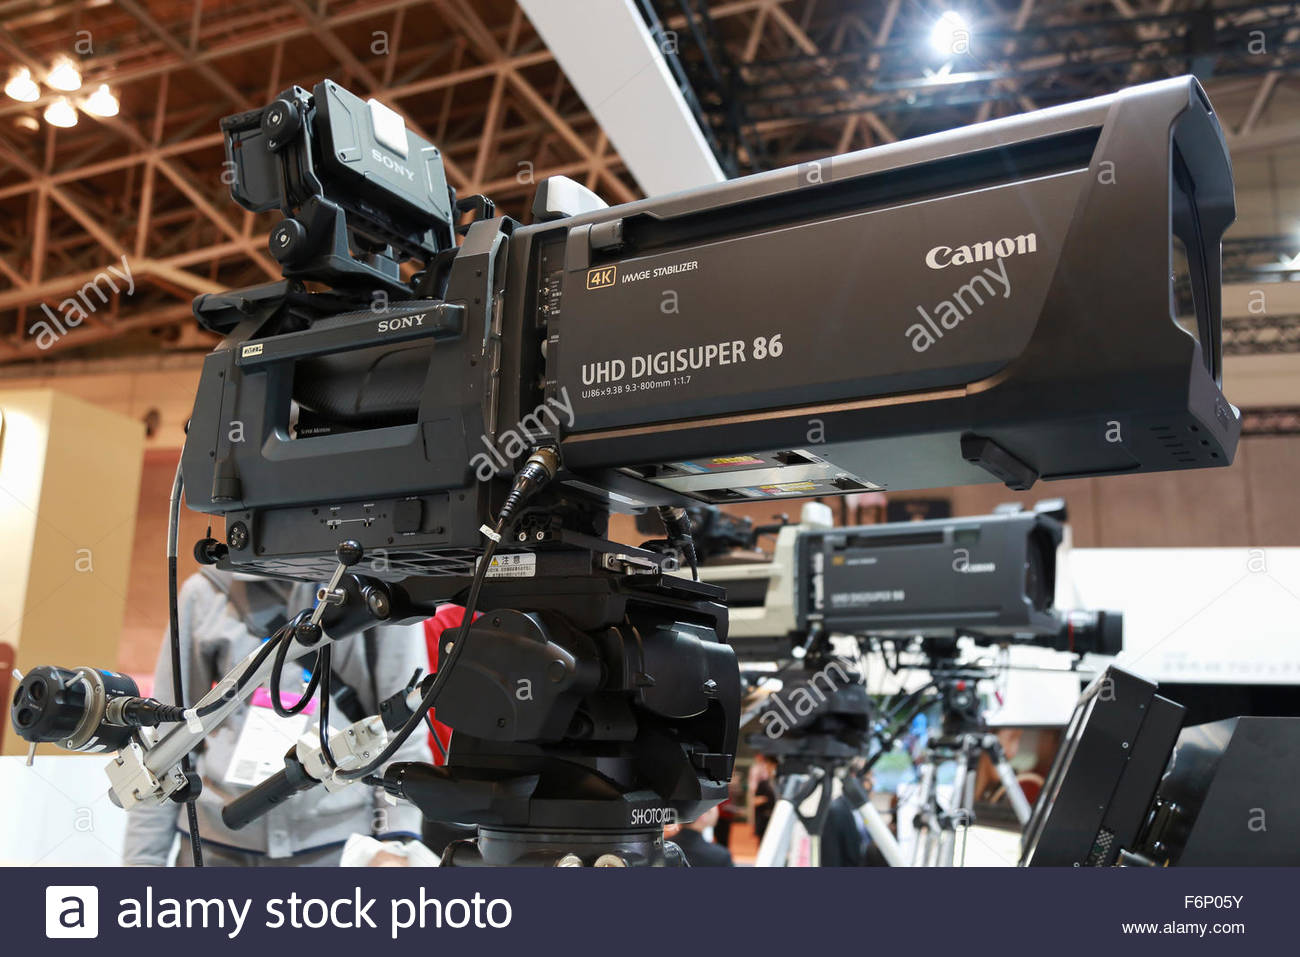 canon-4k-lenses-for-tv-cameras-on-display-during-the-international-F6P05Y.jpg